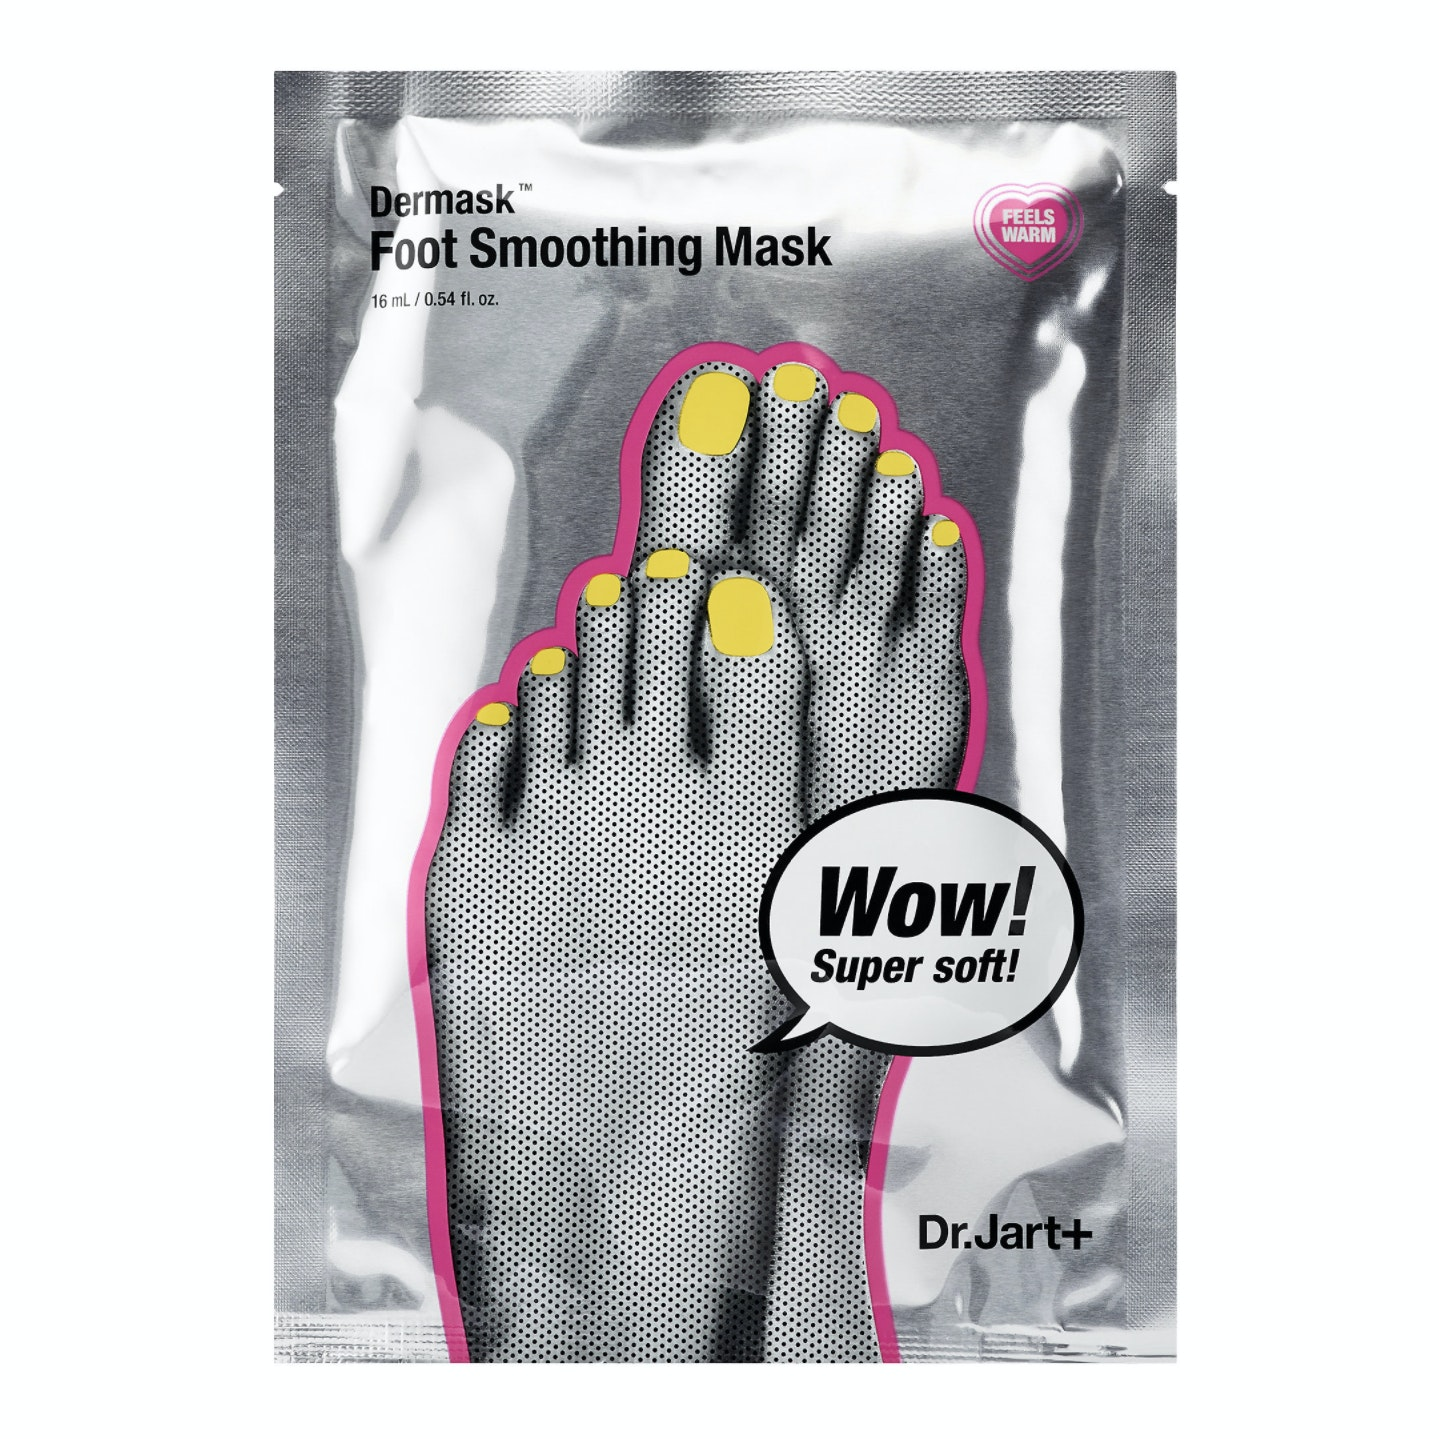 Dr. Jart+® Dermask® Foot Smoothing Mask | Spotlyte